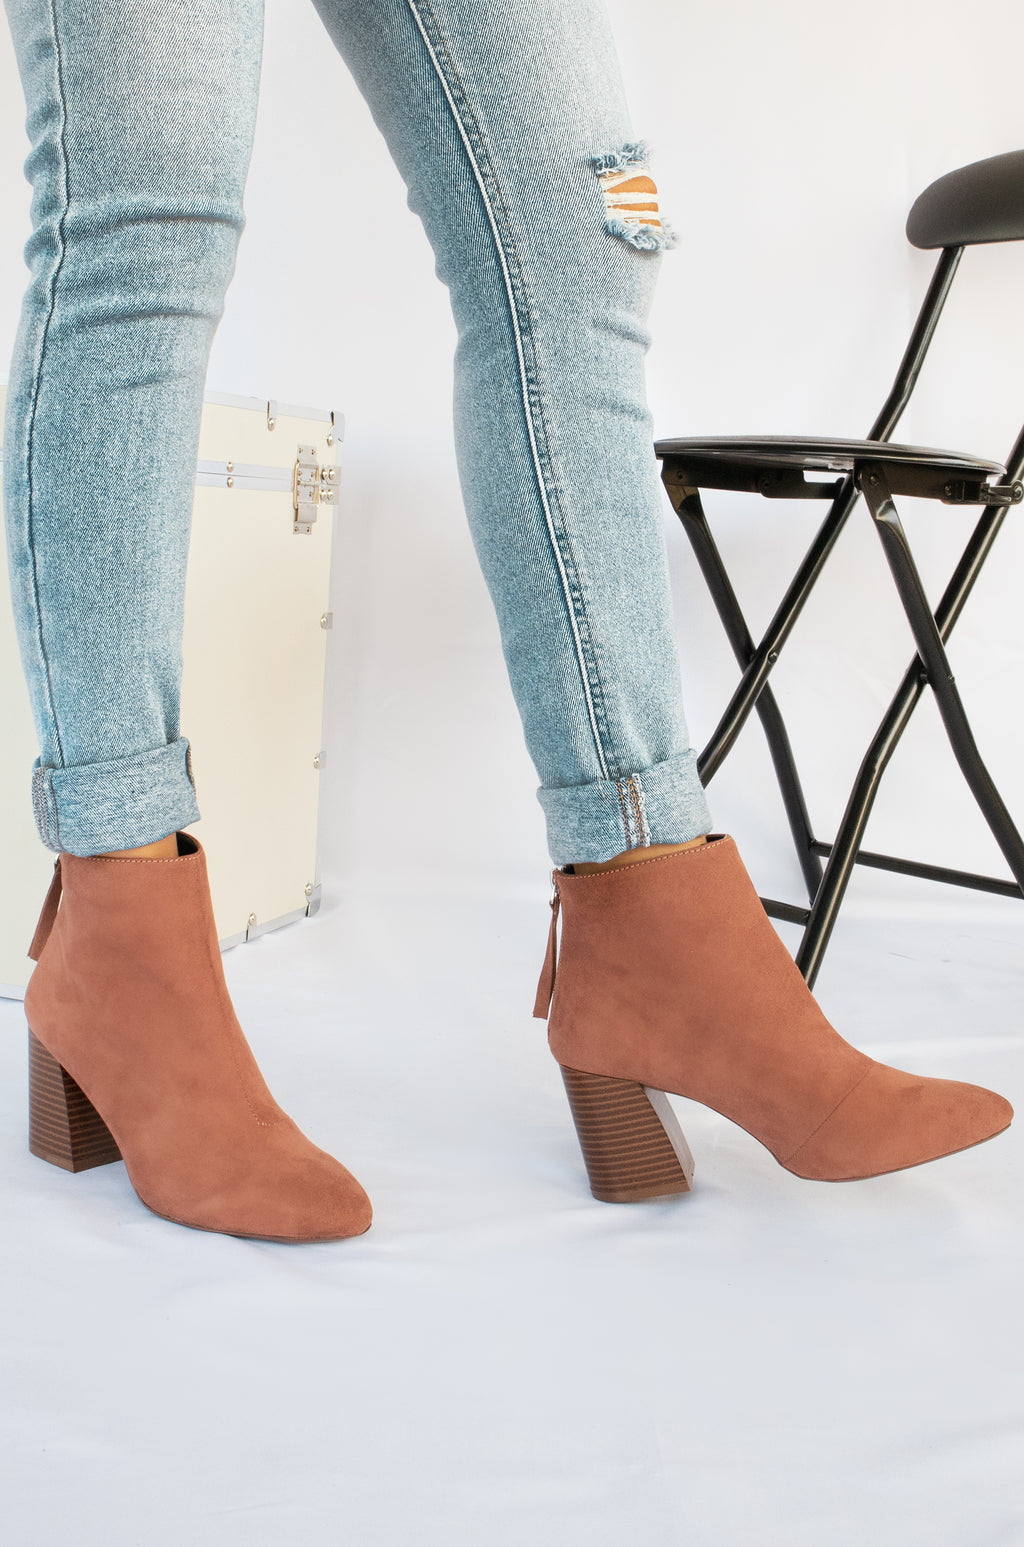 All Eyes On You - Mocha Booties